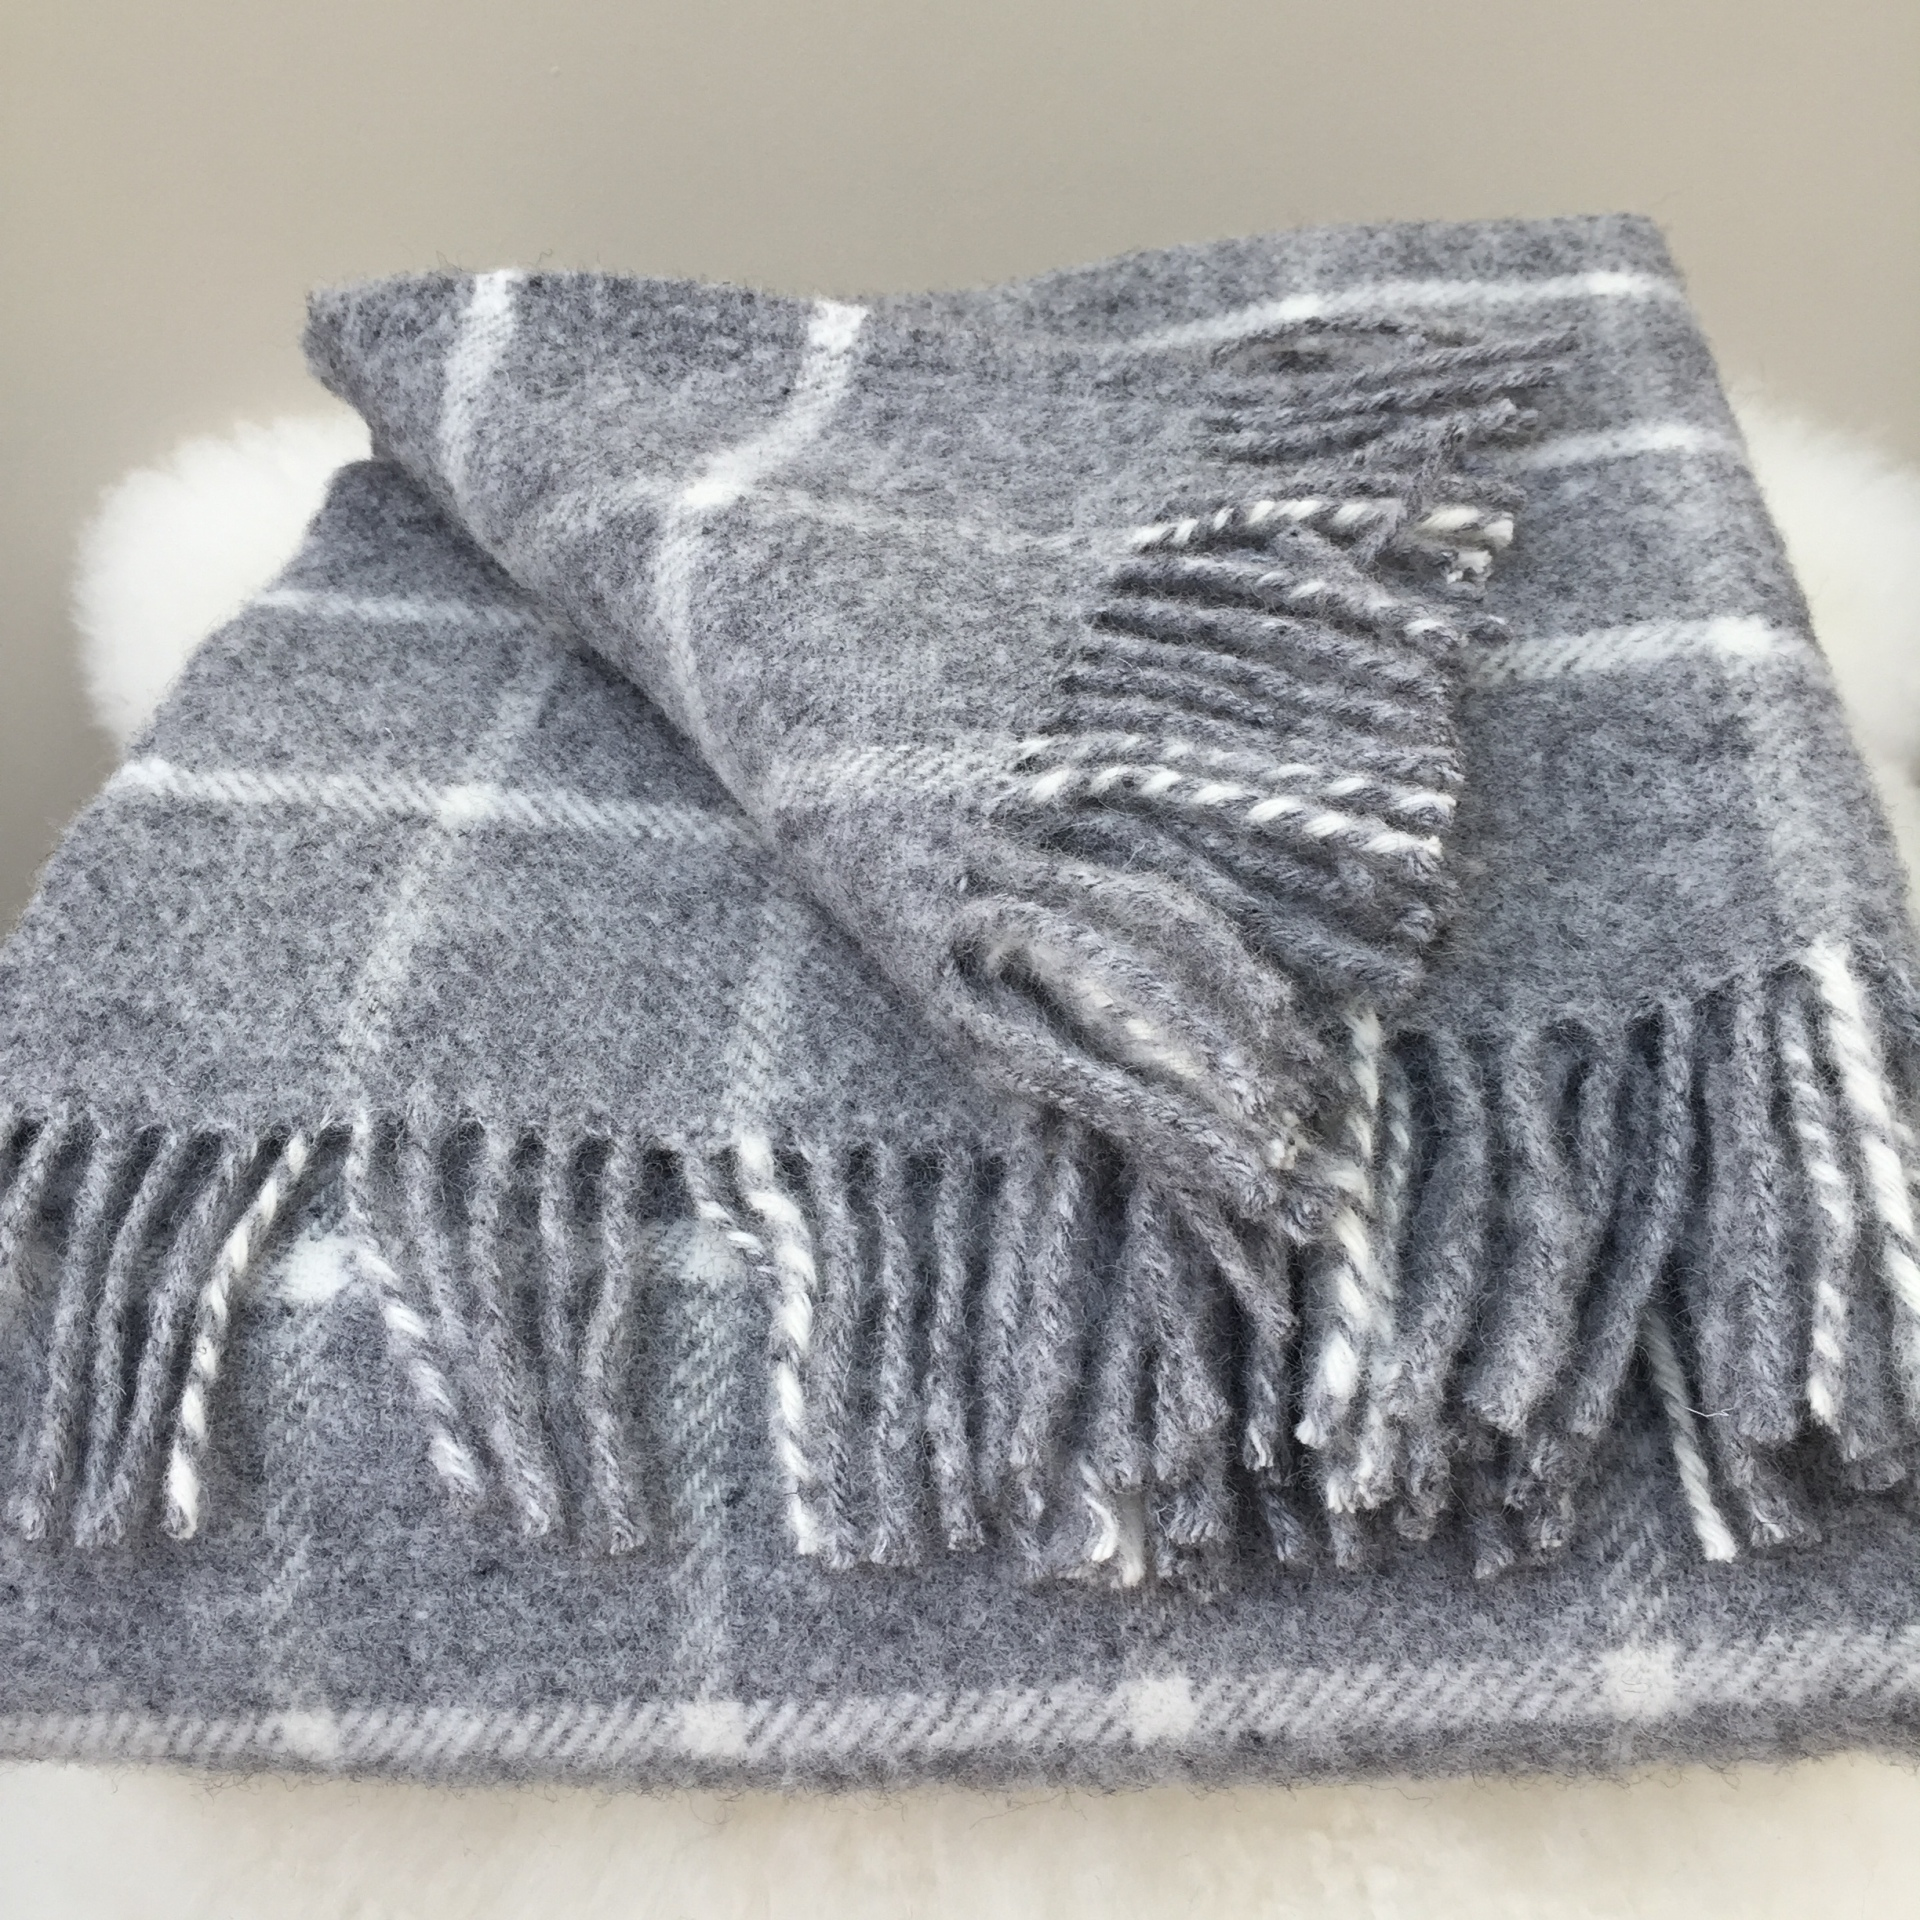 Chequered Check grey throw